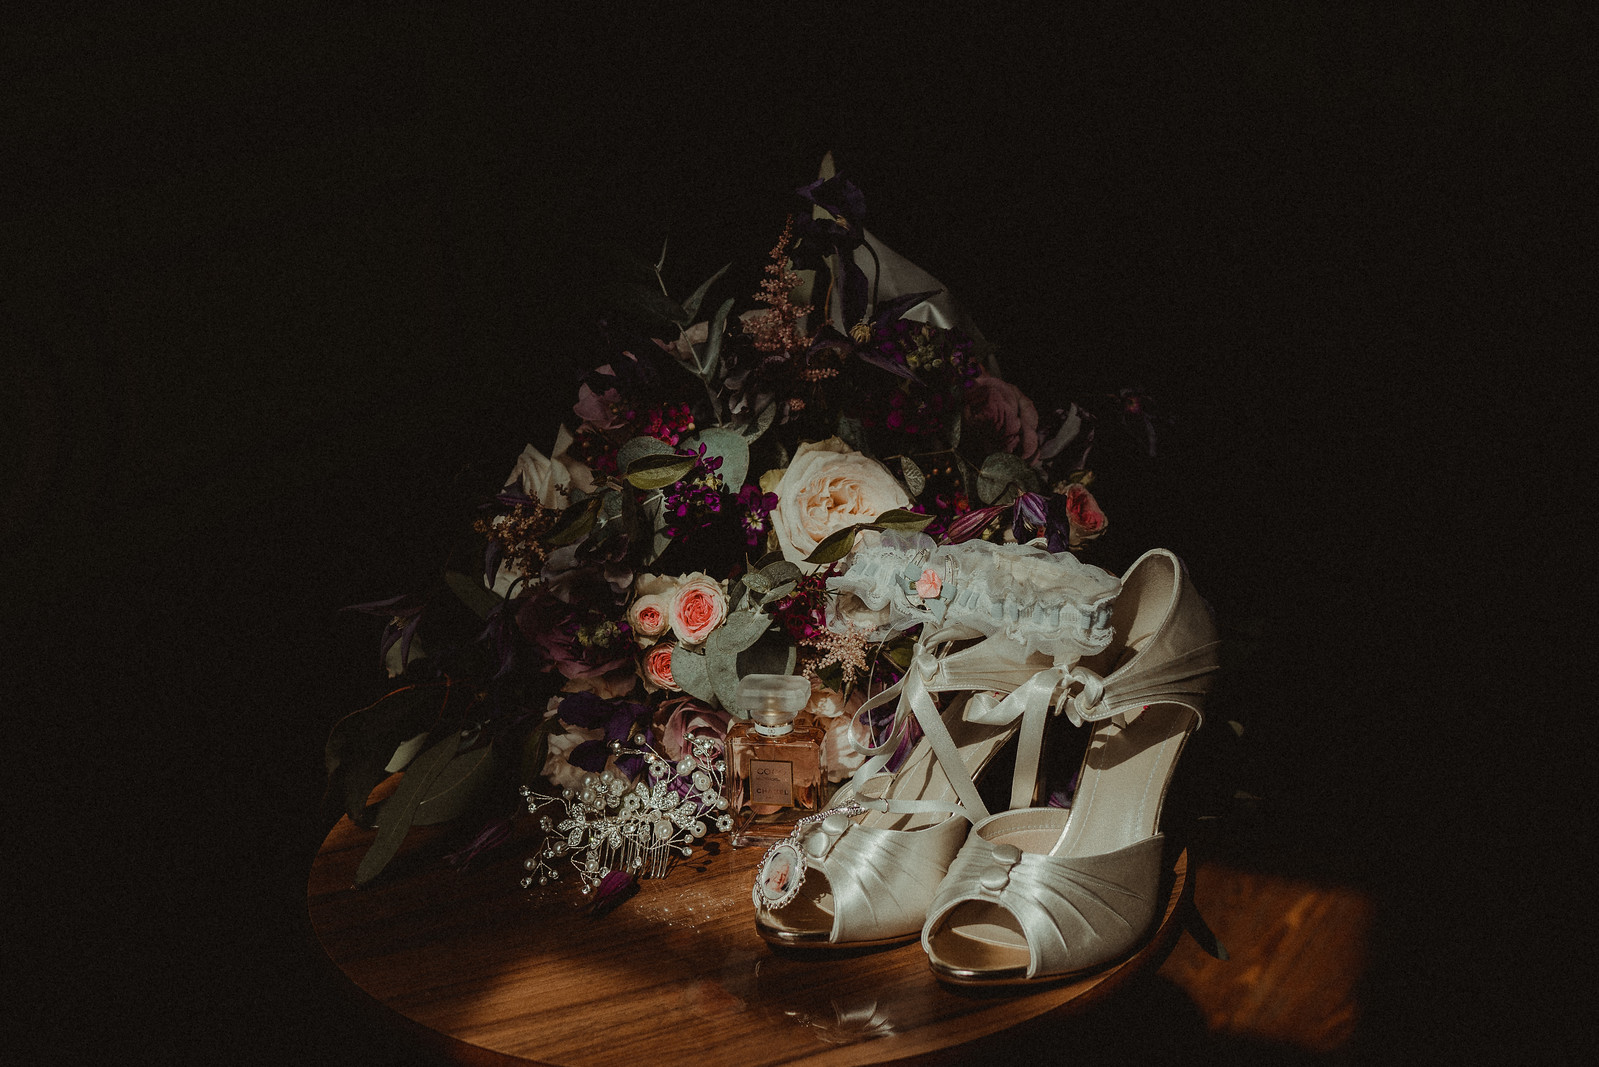 Brides wedding flowers and wedding shoes